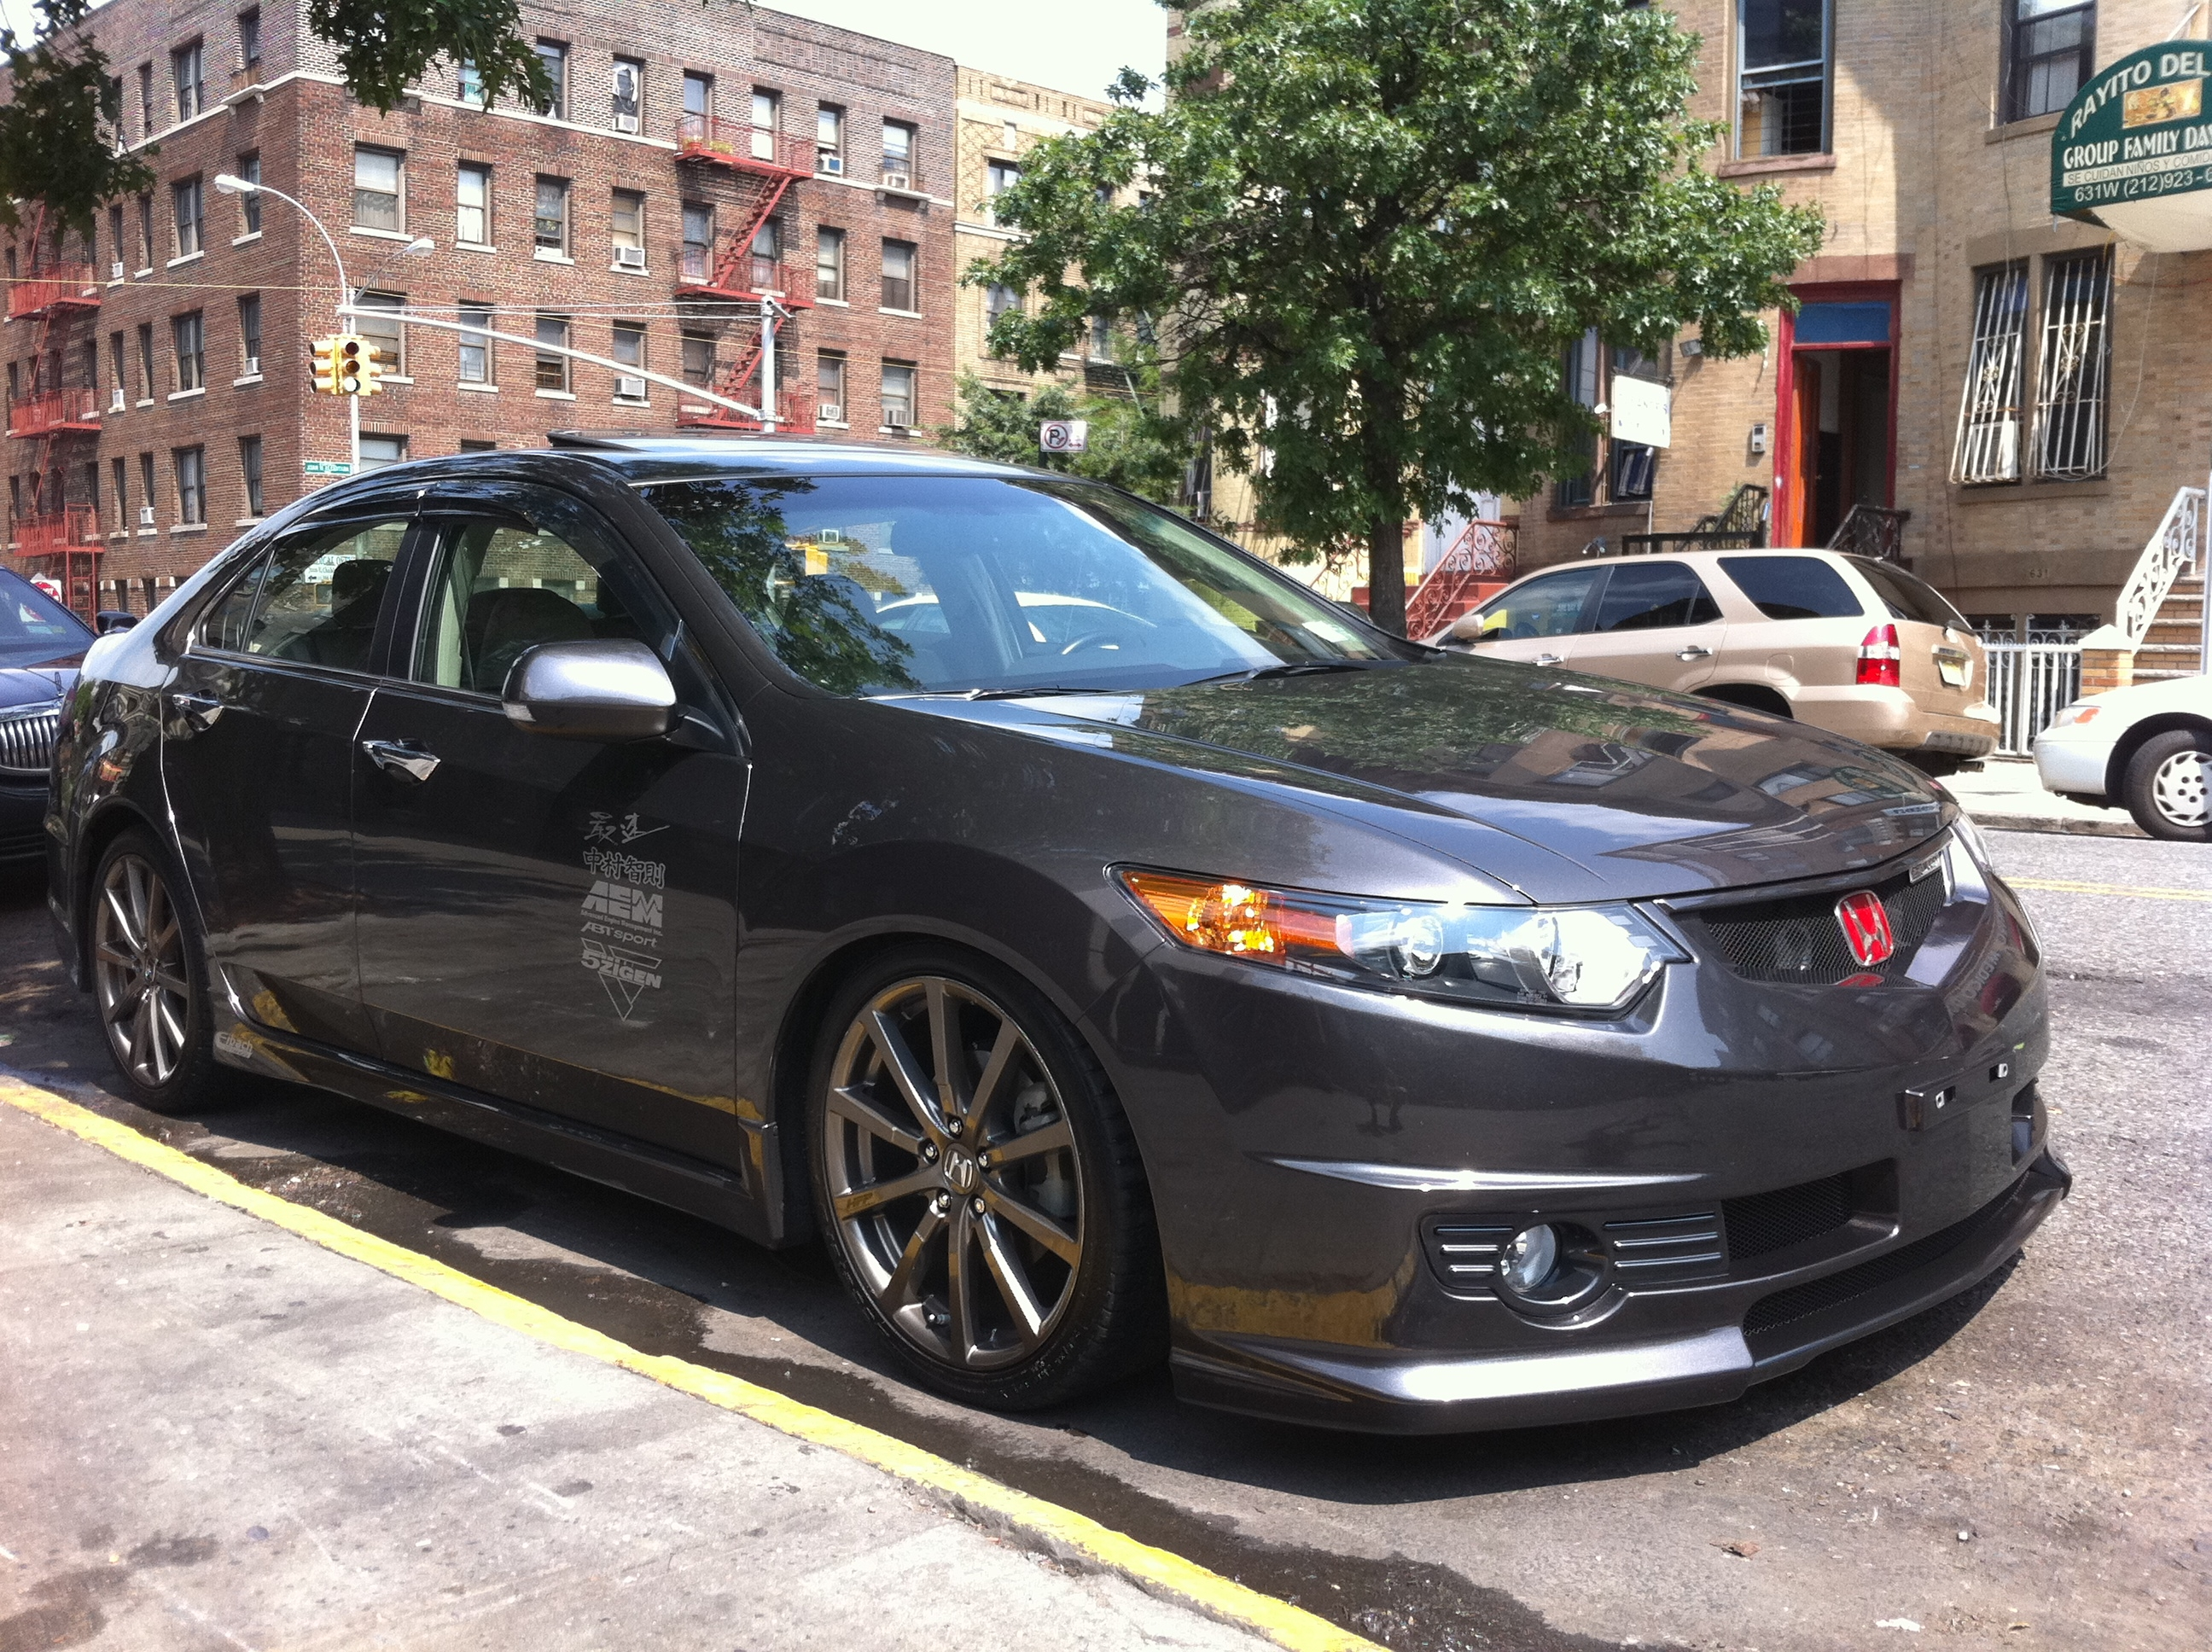 com articles informations tsx photos makes acura bestcarmag jdm biuttbwu